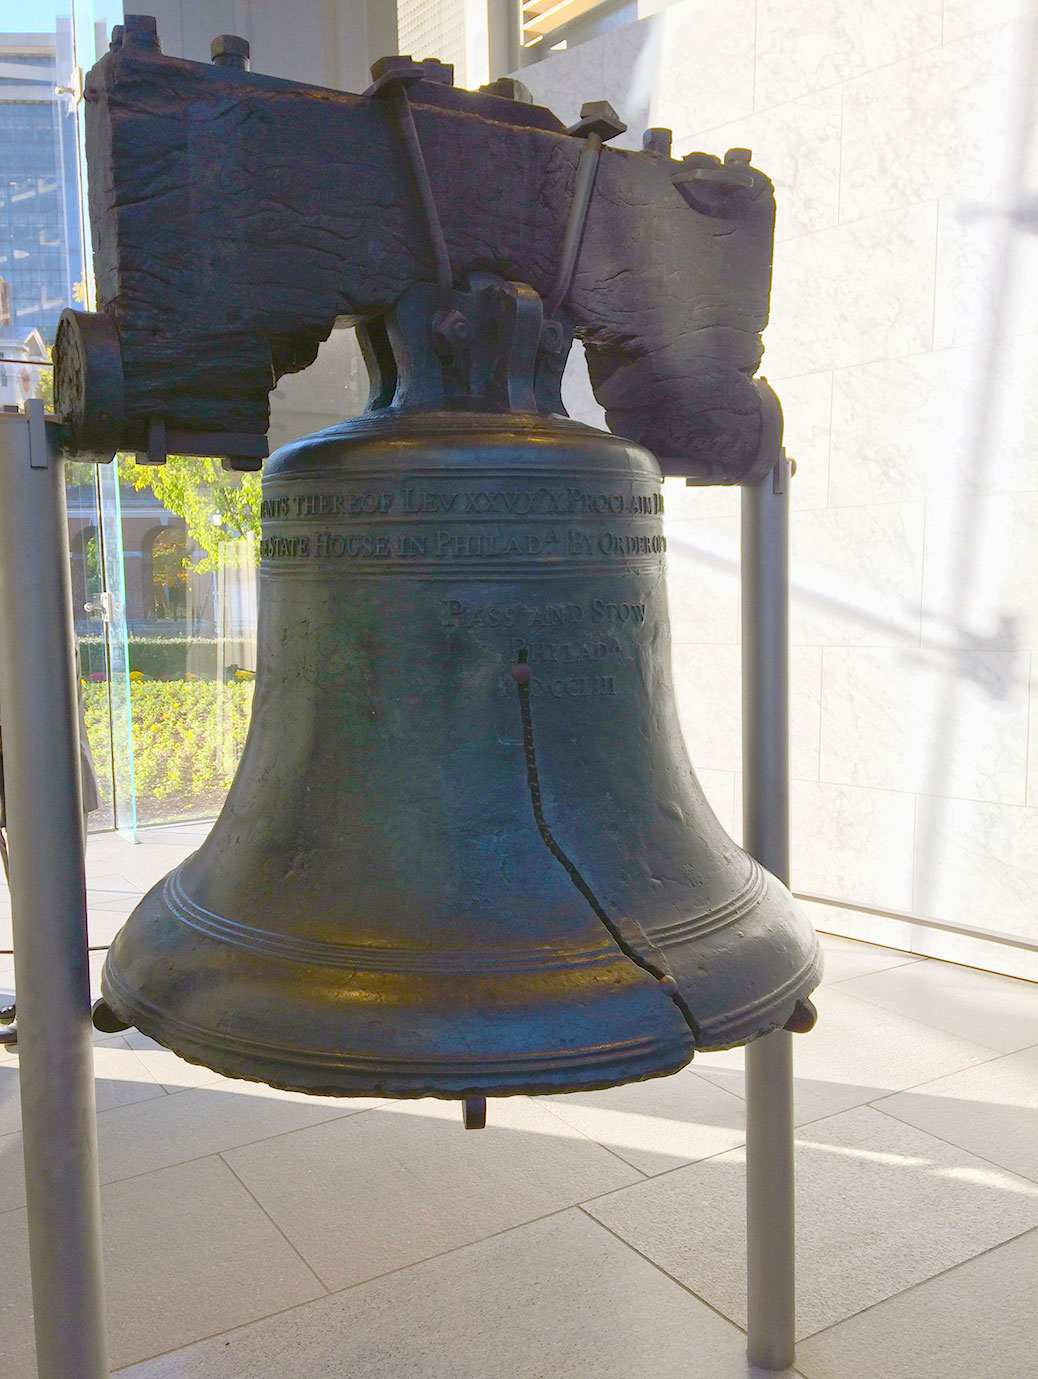 An icon of America, most stories around the Liberty Bell are more myth than fact. The truth is that the bell actually cracked during its first test strike and had to be recast twice. It was finally replaced in 1876.